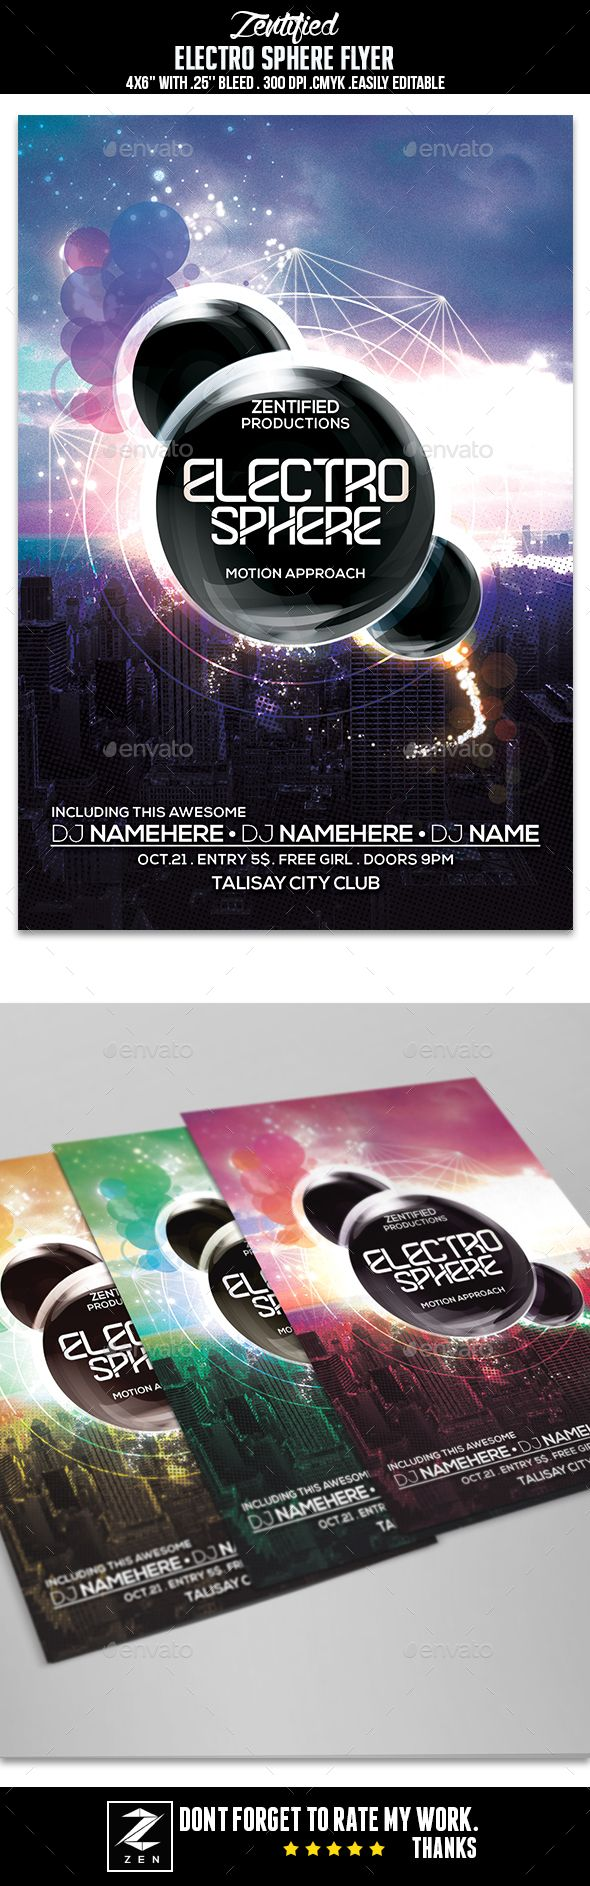 Electro Sphere Flyer Template PSD. Download here: http://graphicriver.net/item/electro-sphere-flyer/15533095?ref=ksioks